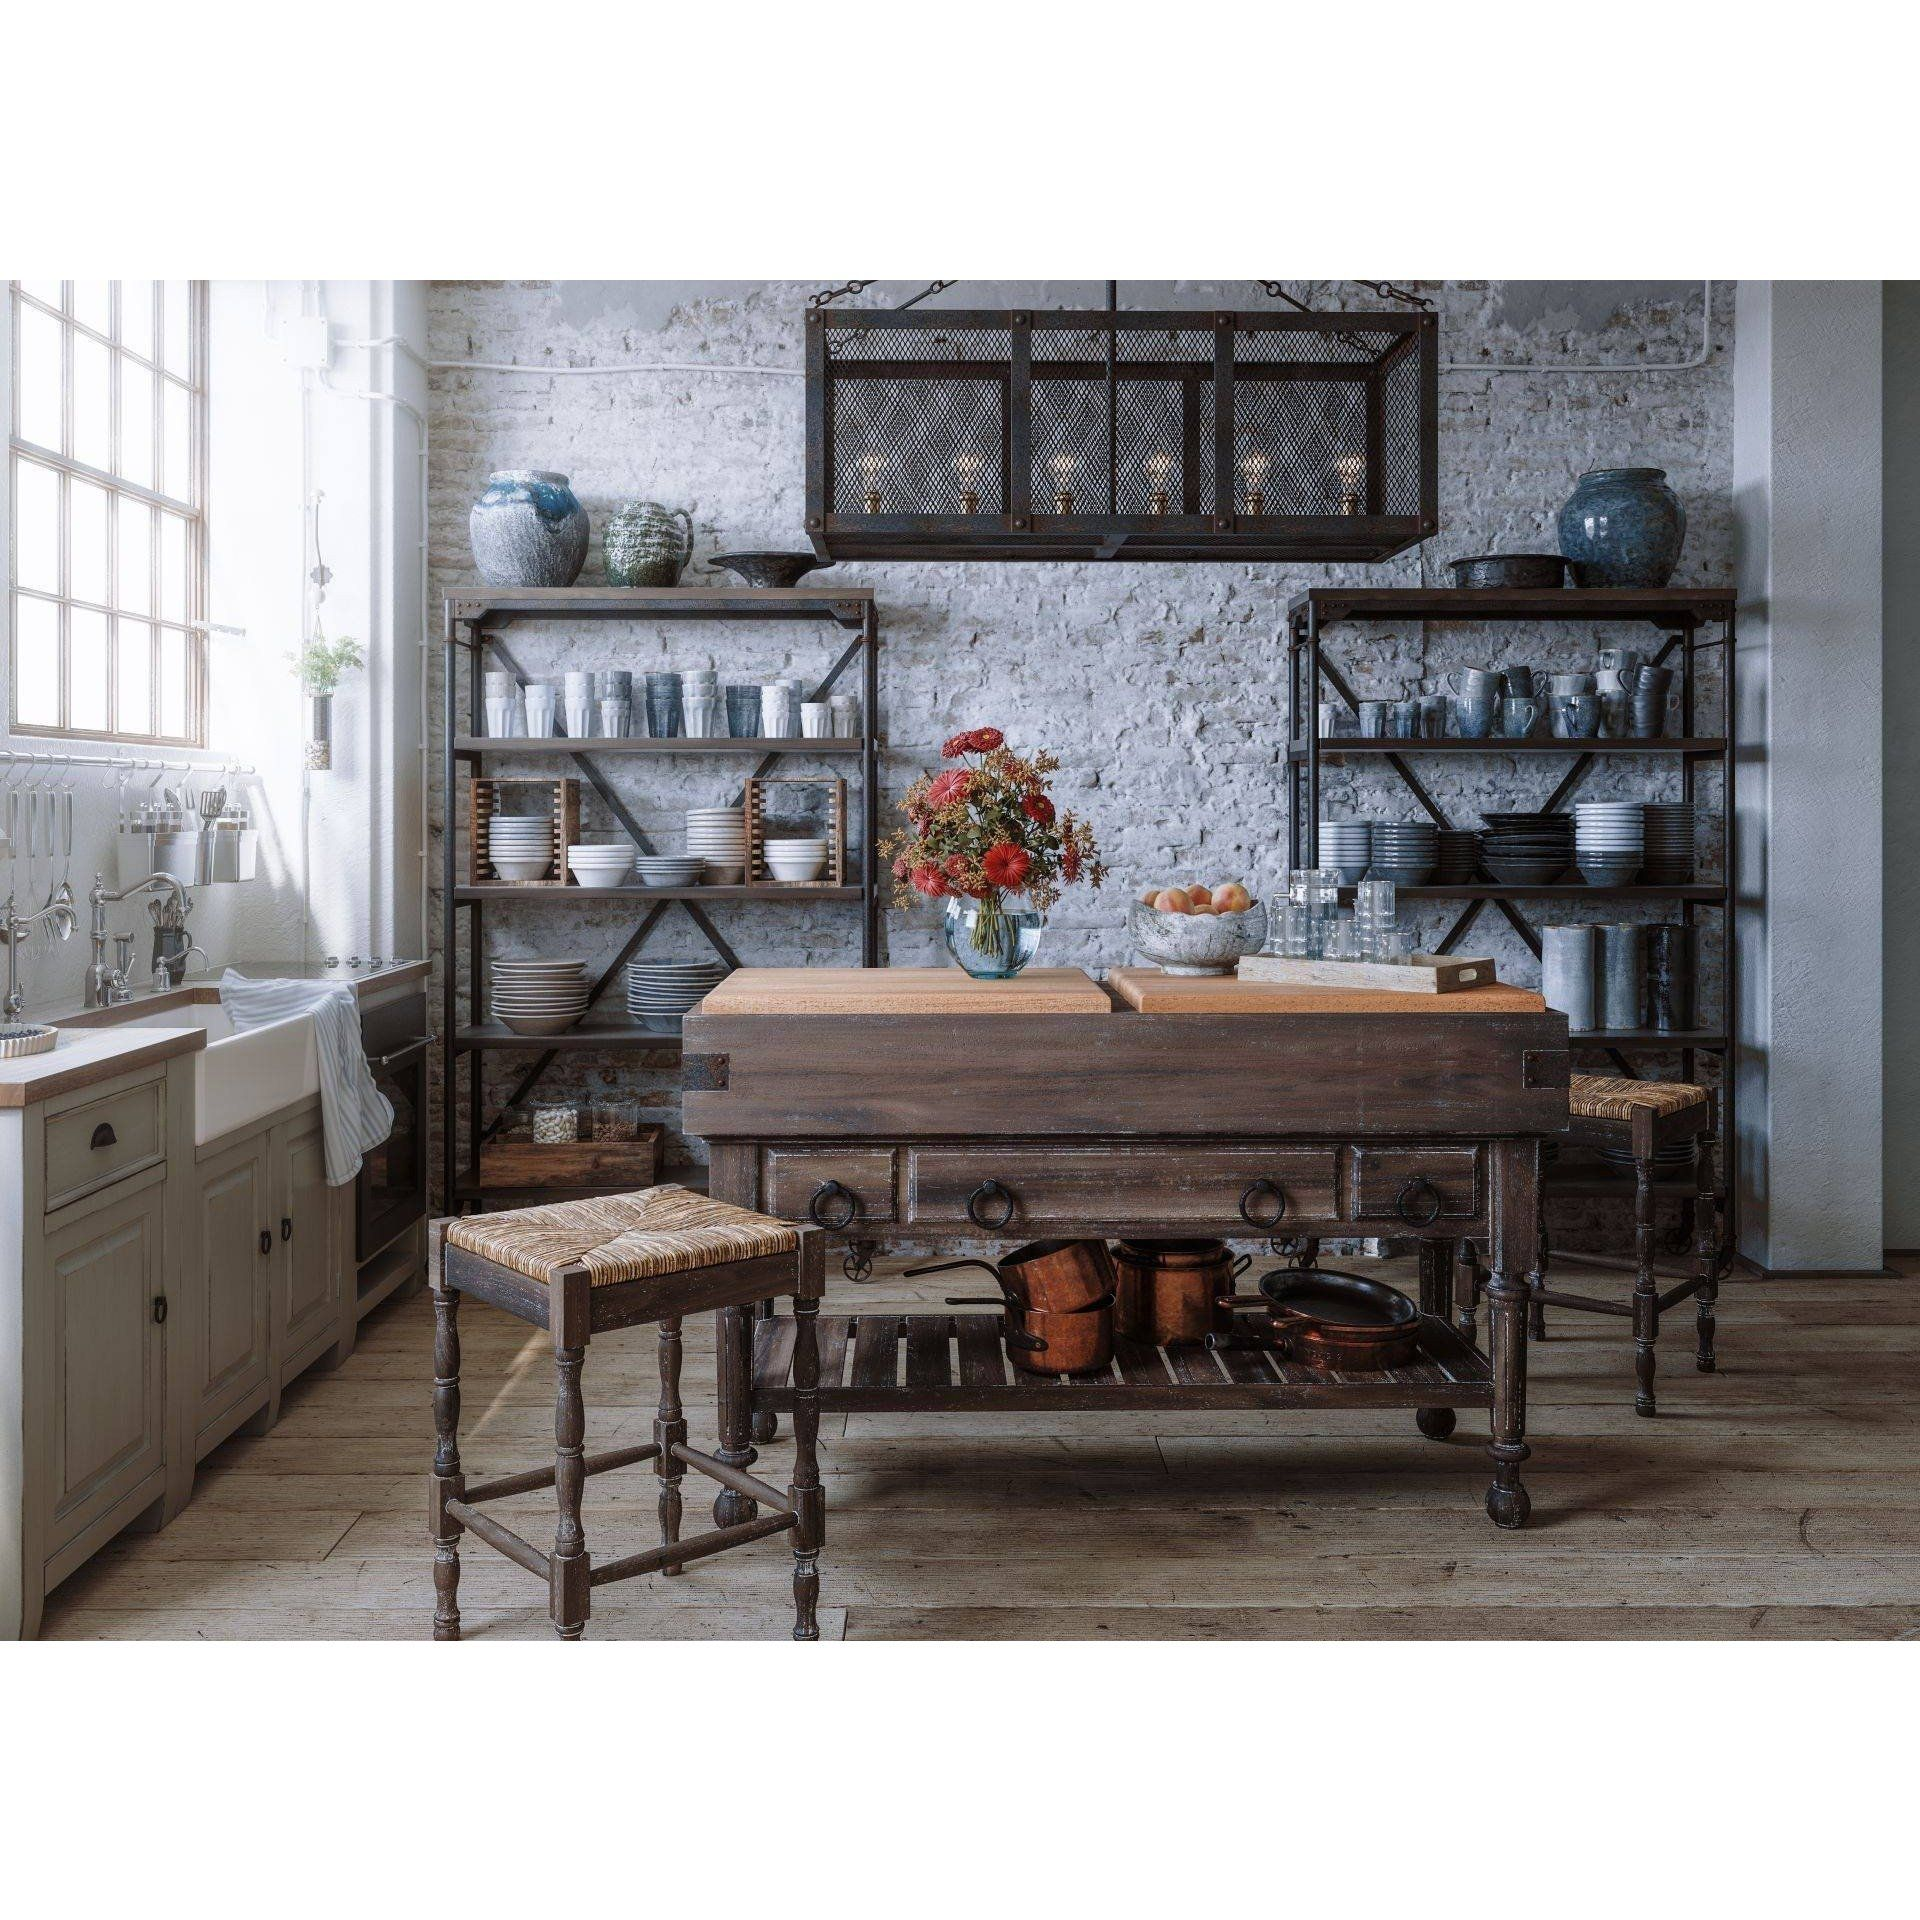 Lovecup Mercantile Rolling Shelving - LOVECUP